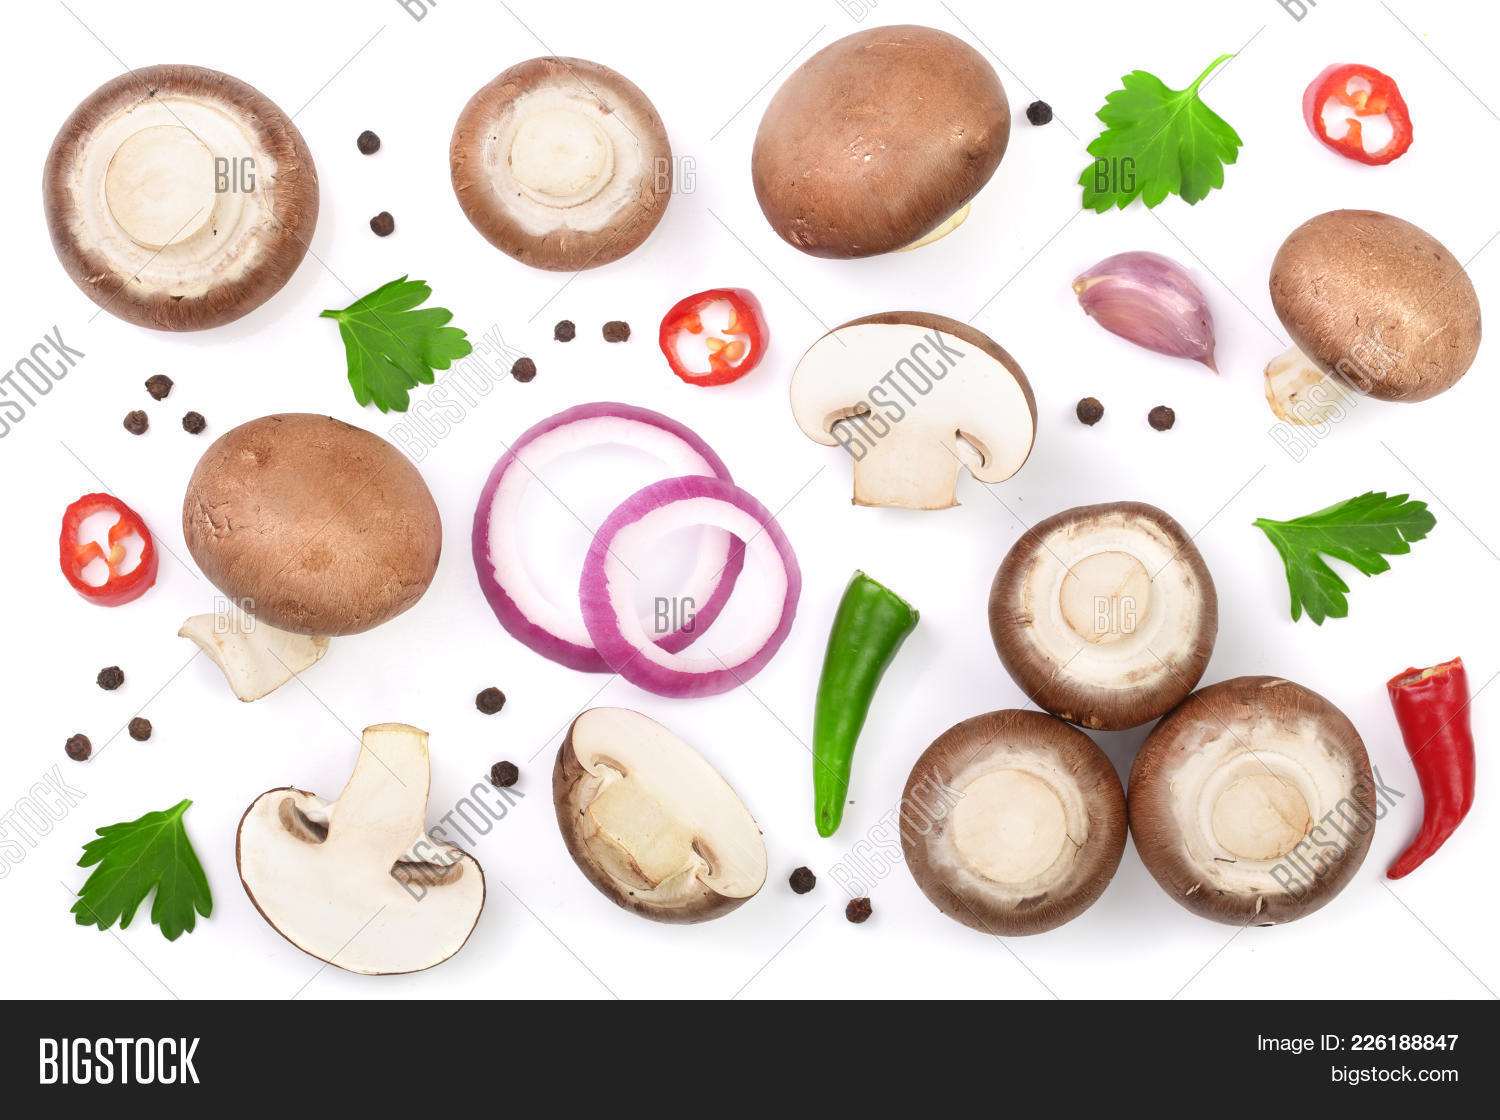 Collection mushrooms fresh champignon powerpoint template your text toneelgroepblik Image collections